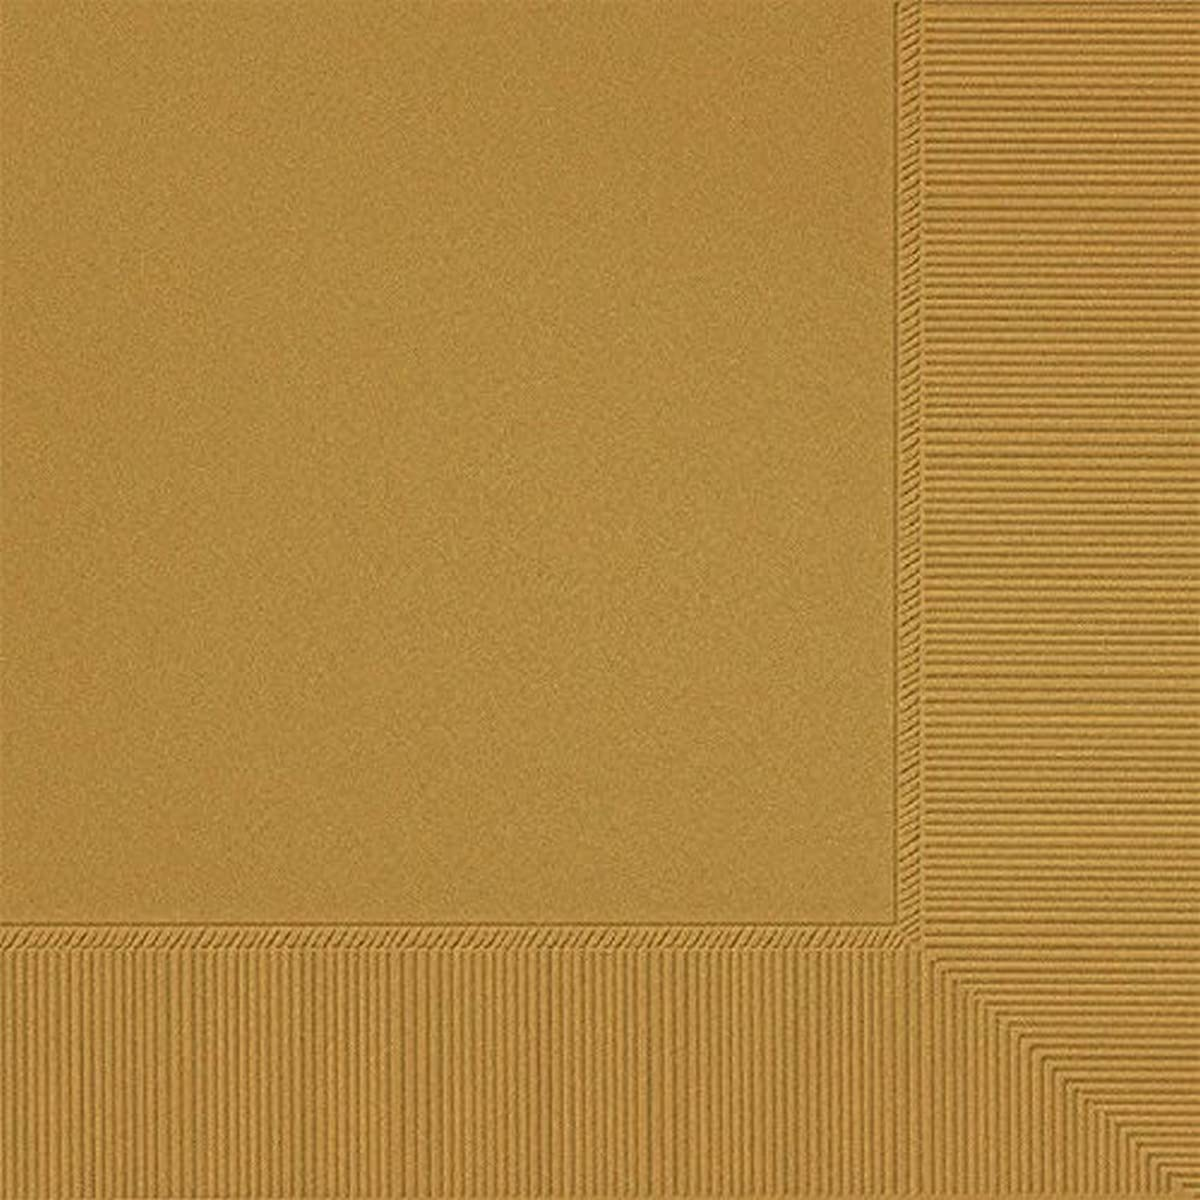 Gold 3-Ply Luncheon Napkins | Pack of 20 | Party Supply